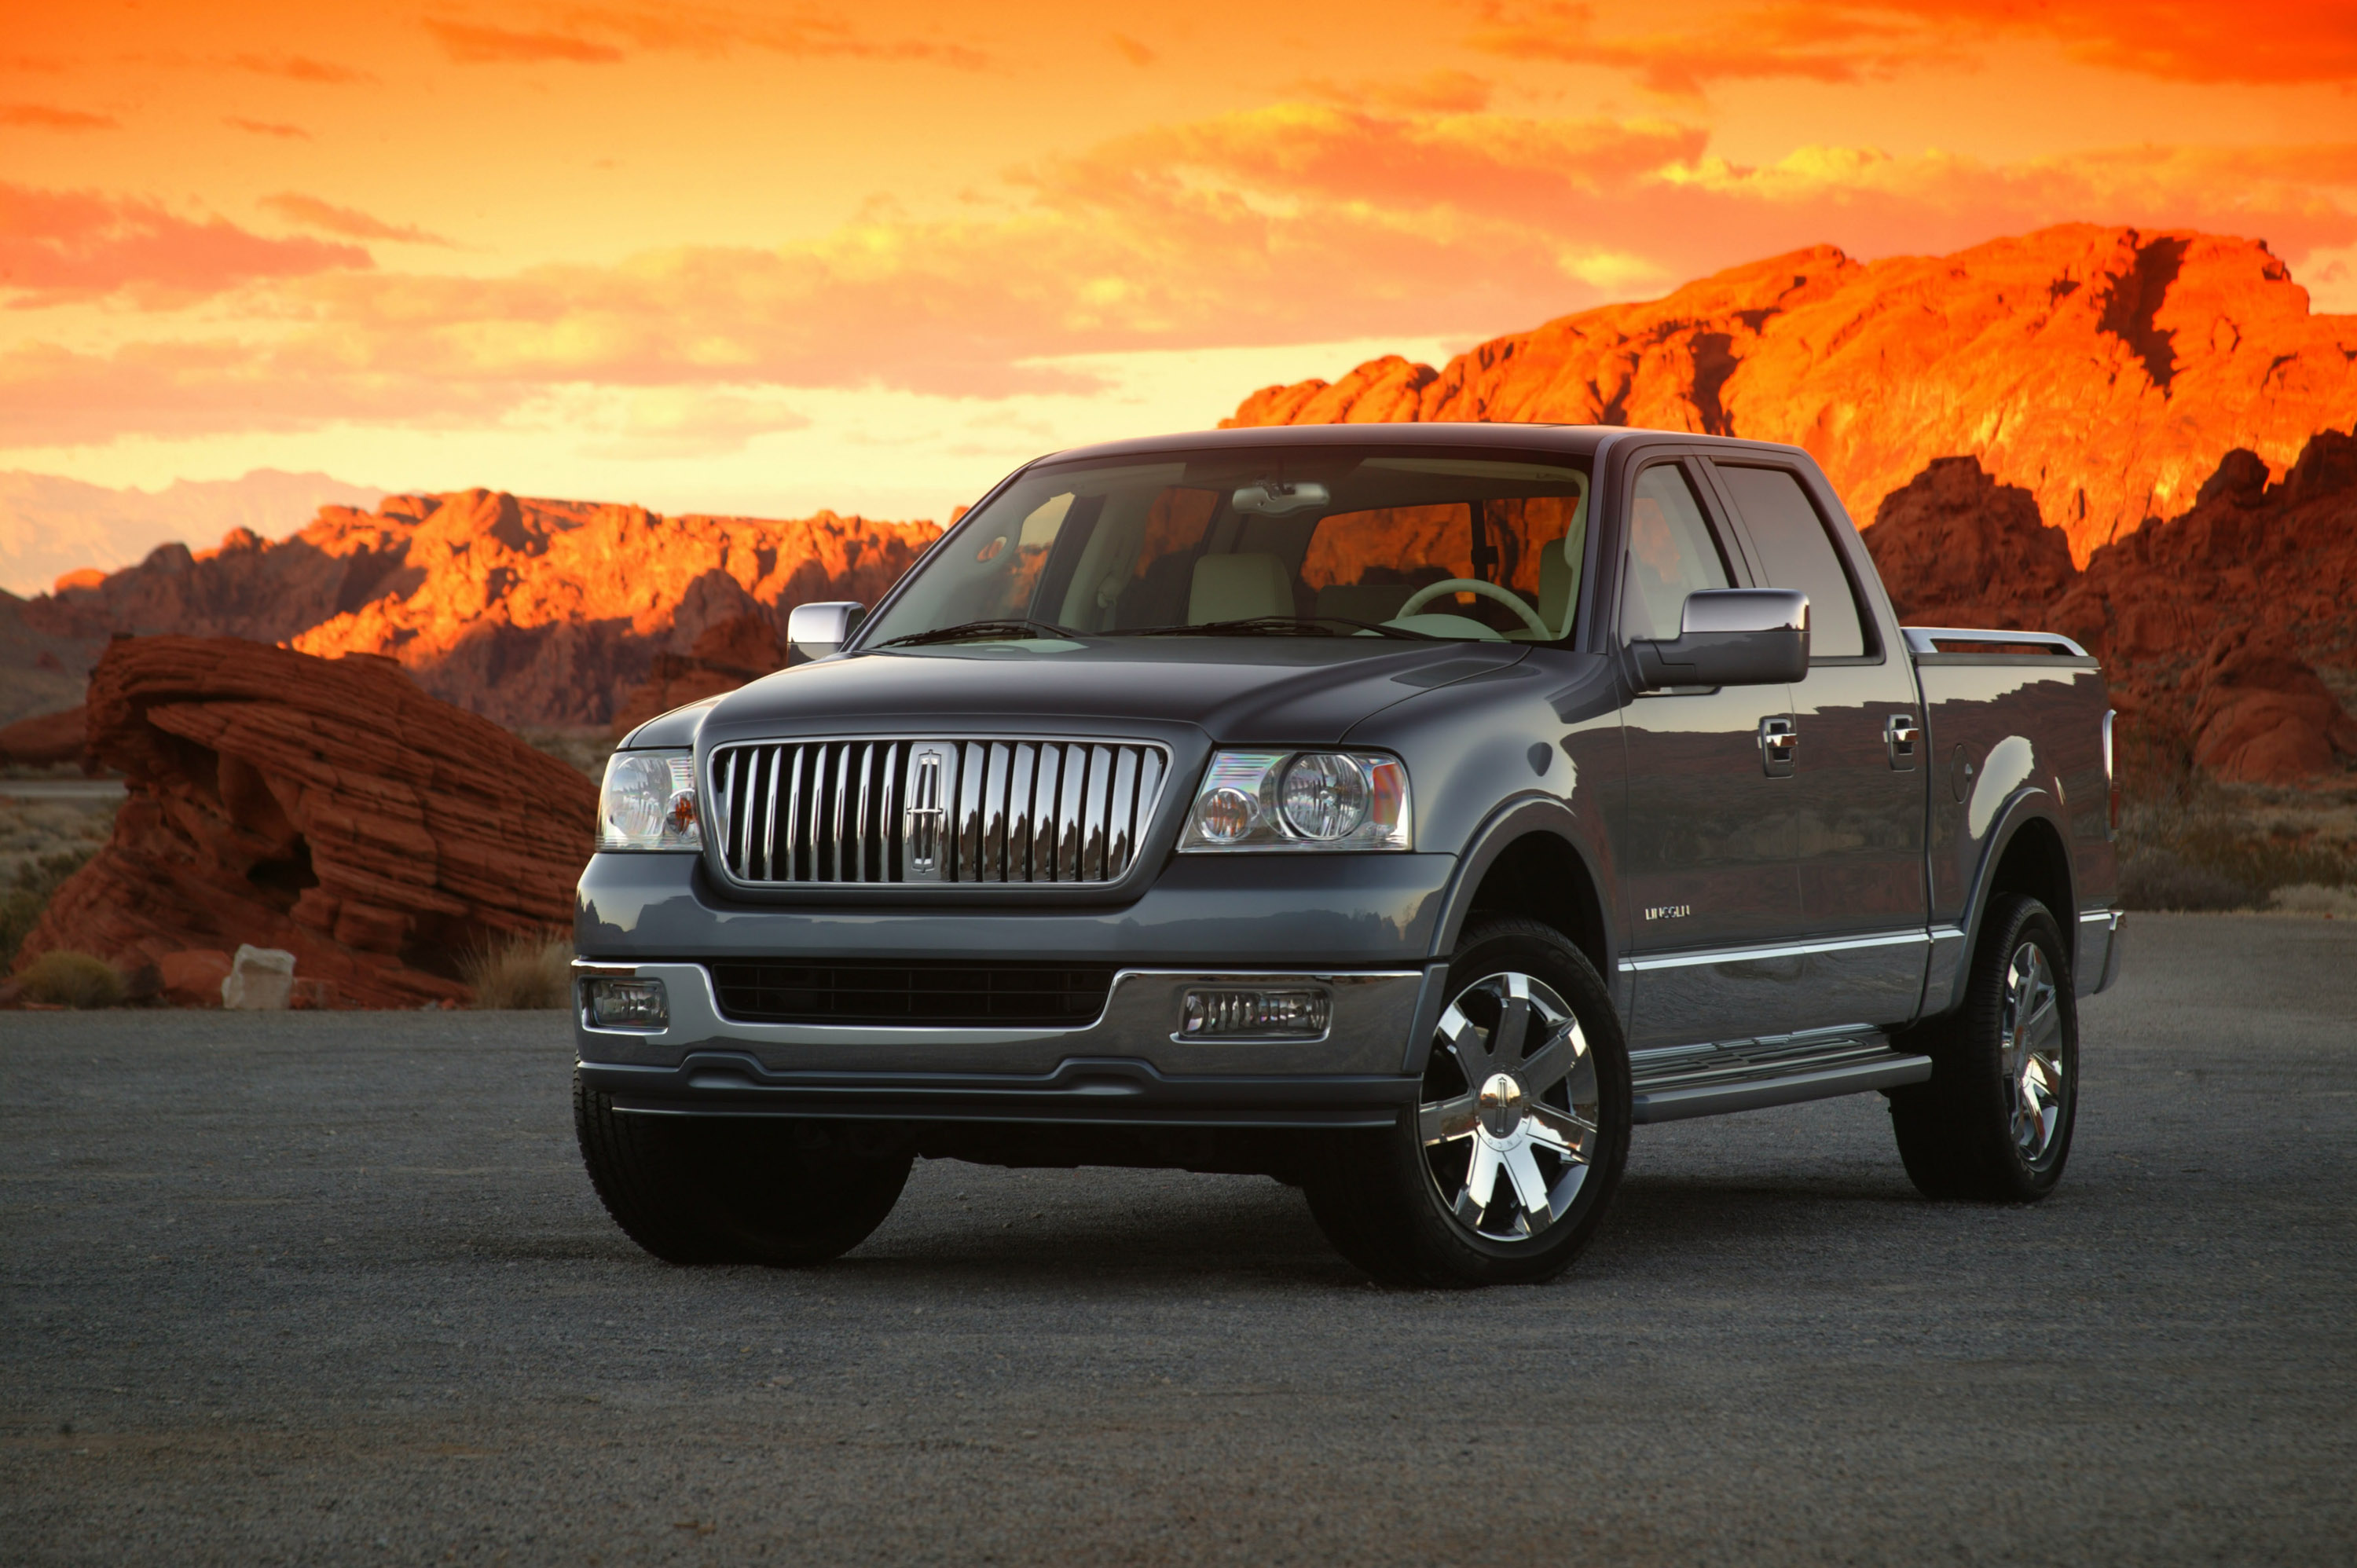 Lincoln Mark LT Concept Picture